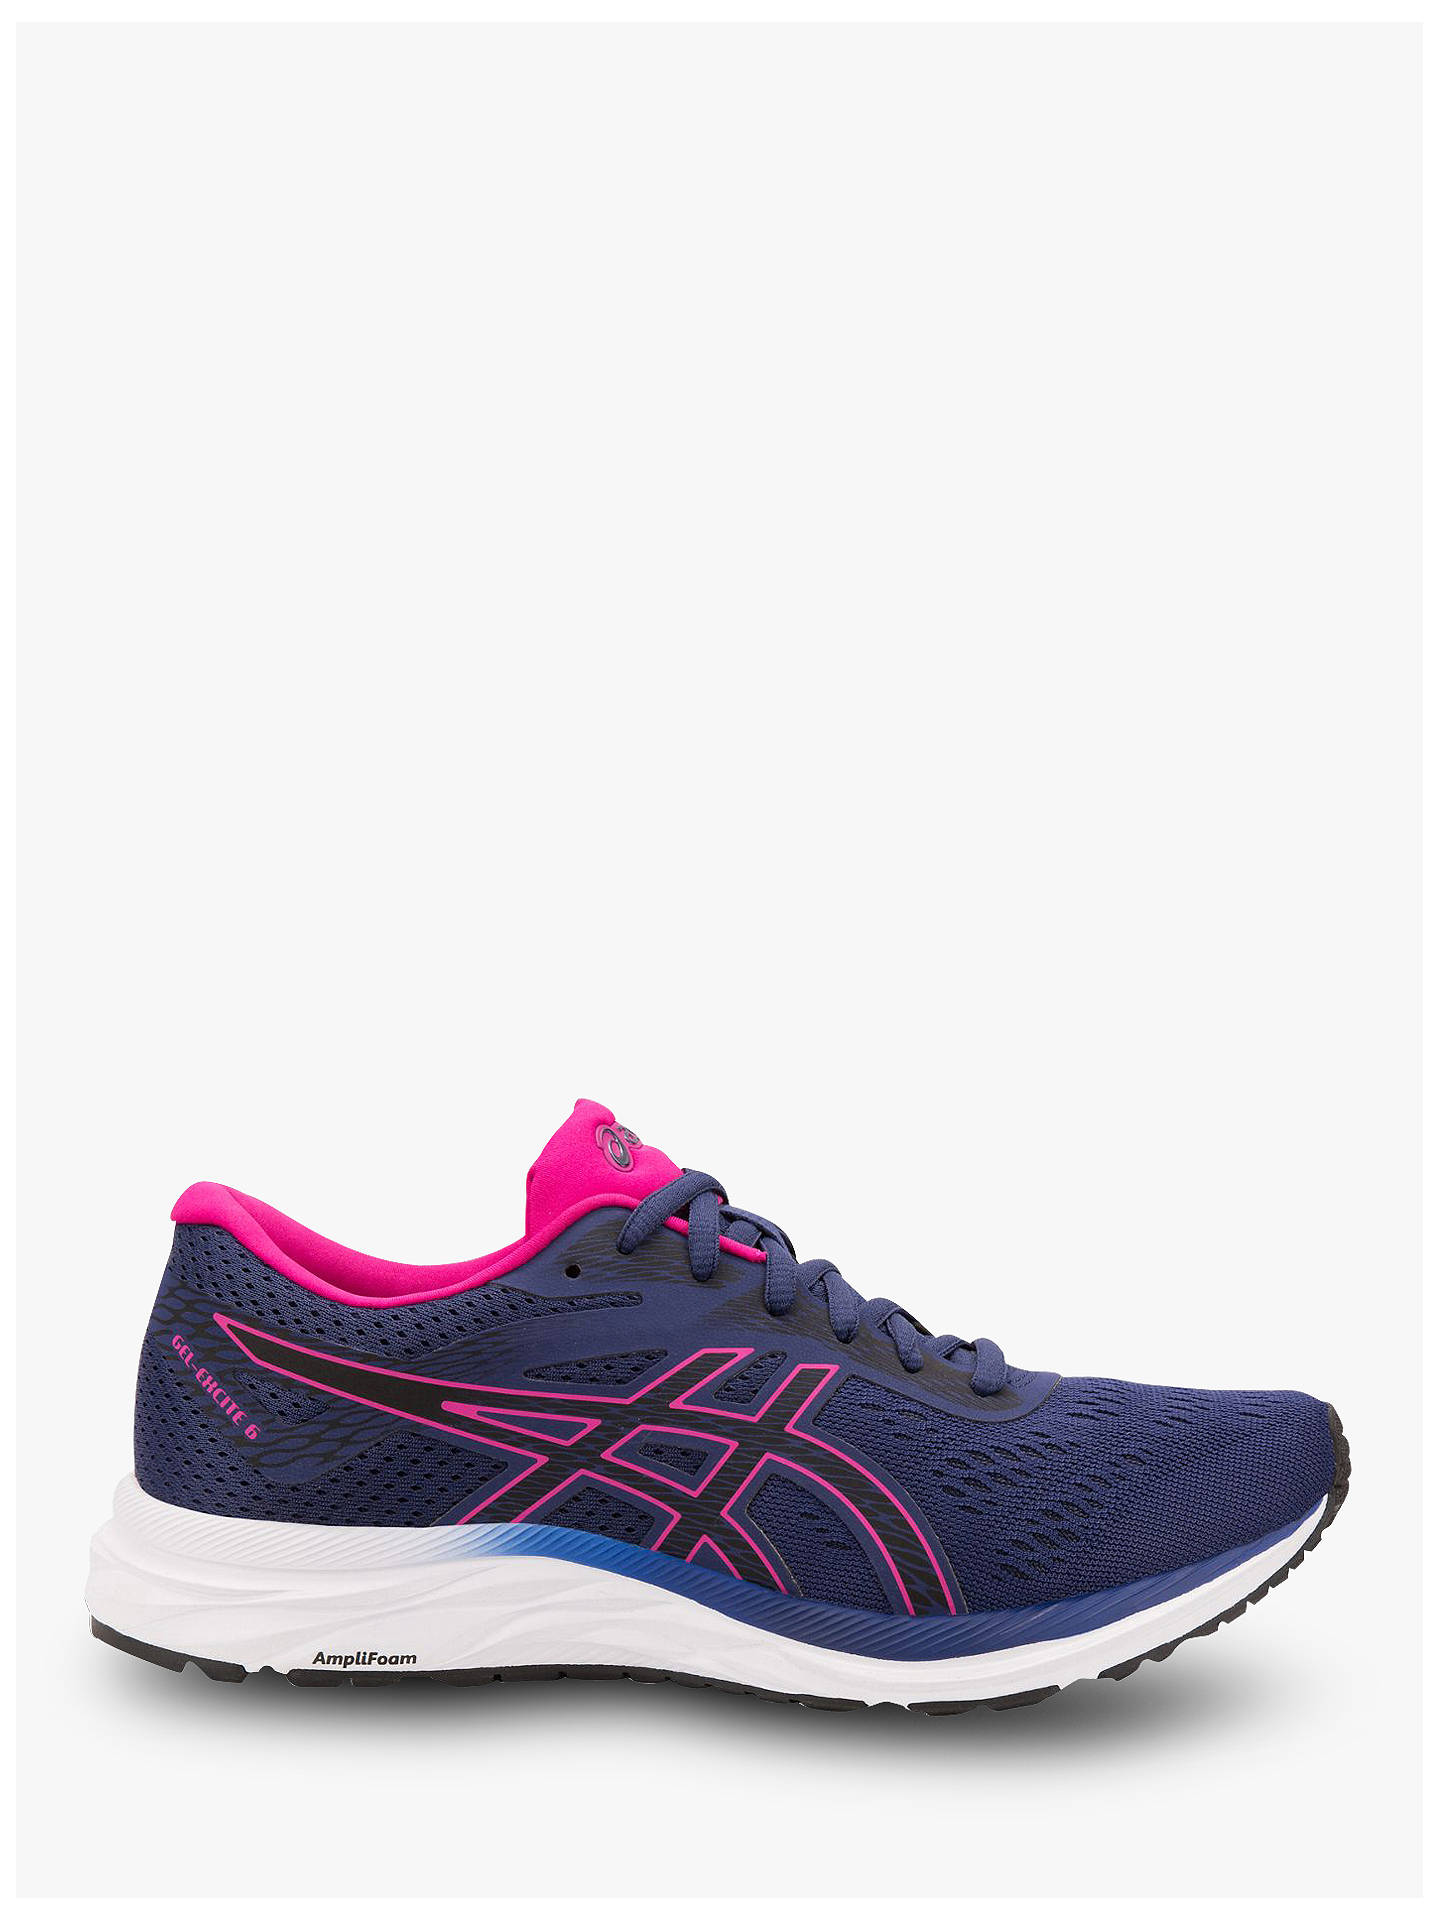 a6aa62be90f64 Buy ASICS GEL-EXCITE 6 Women's Running Shoes, Indigo Blue/Pink Rave, ...